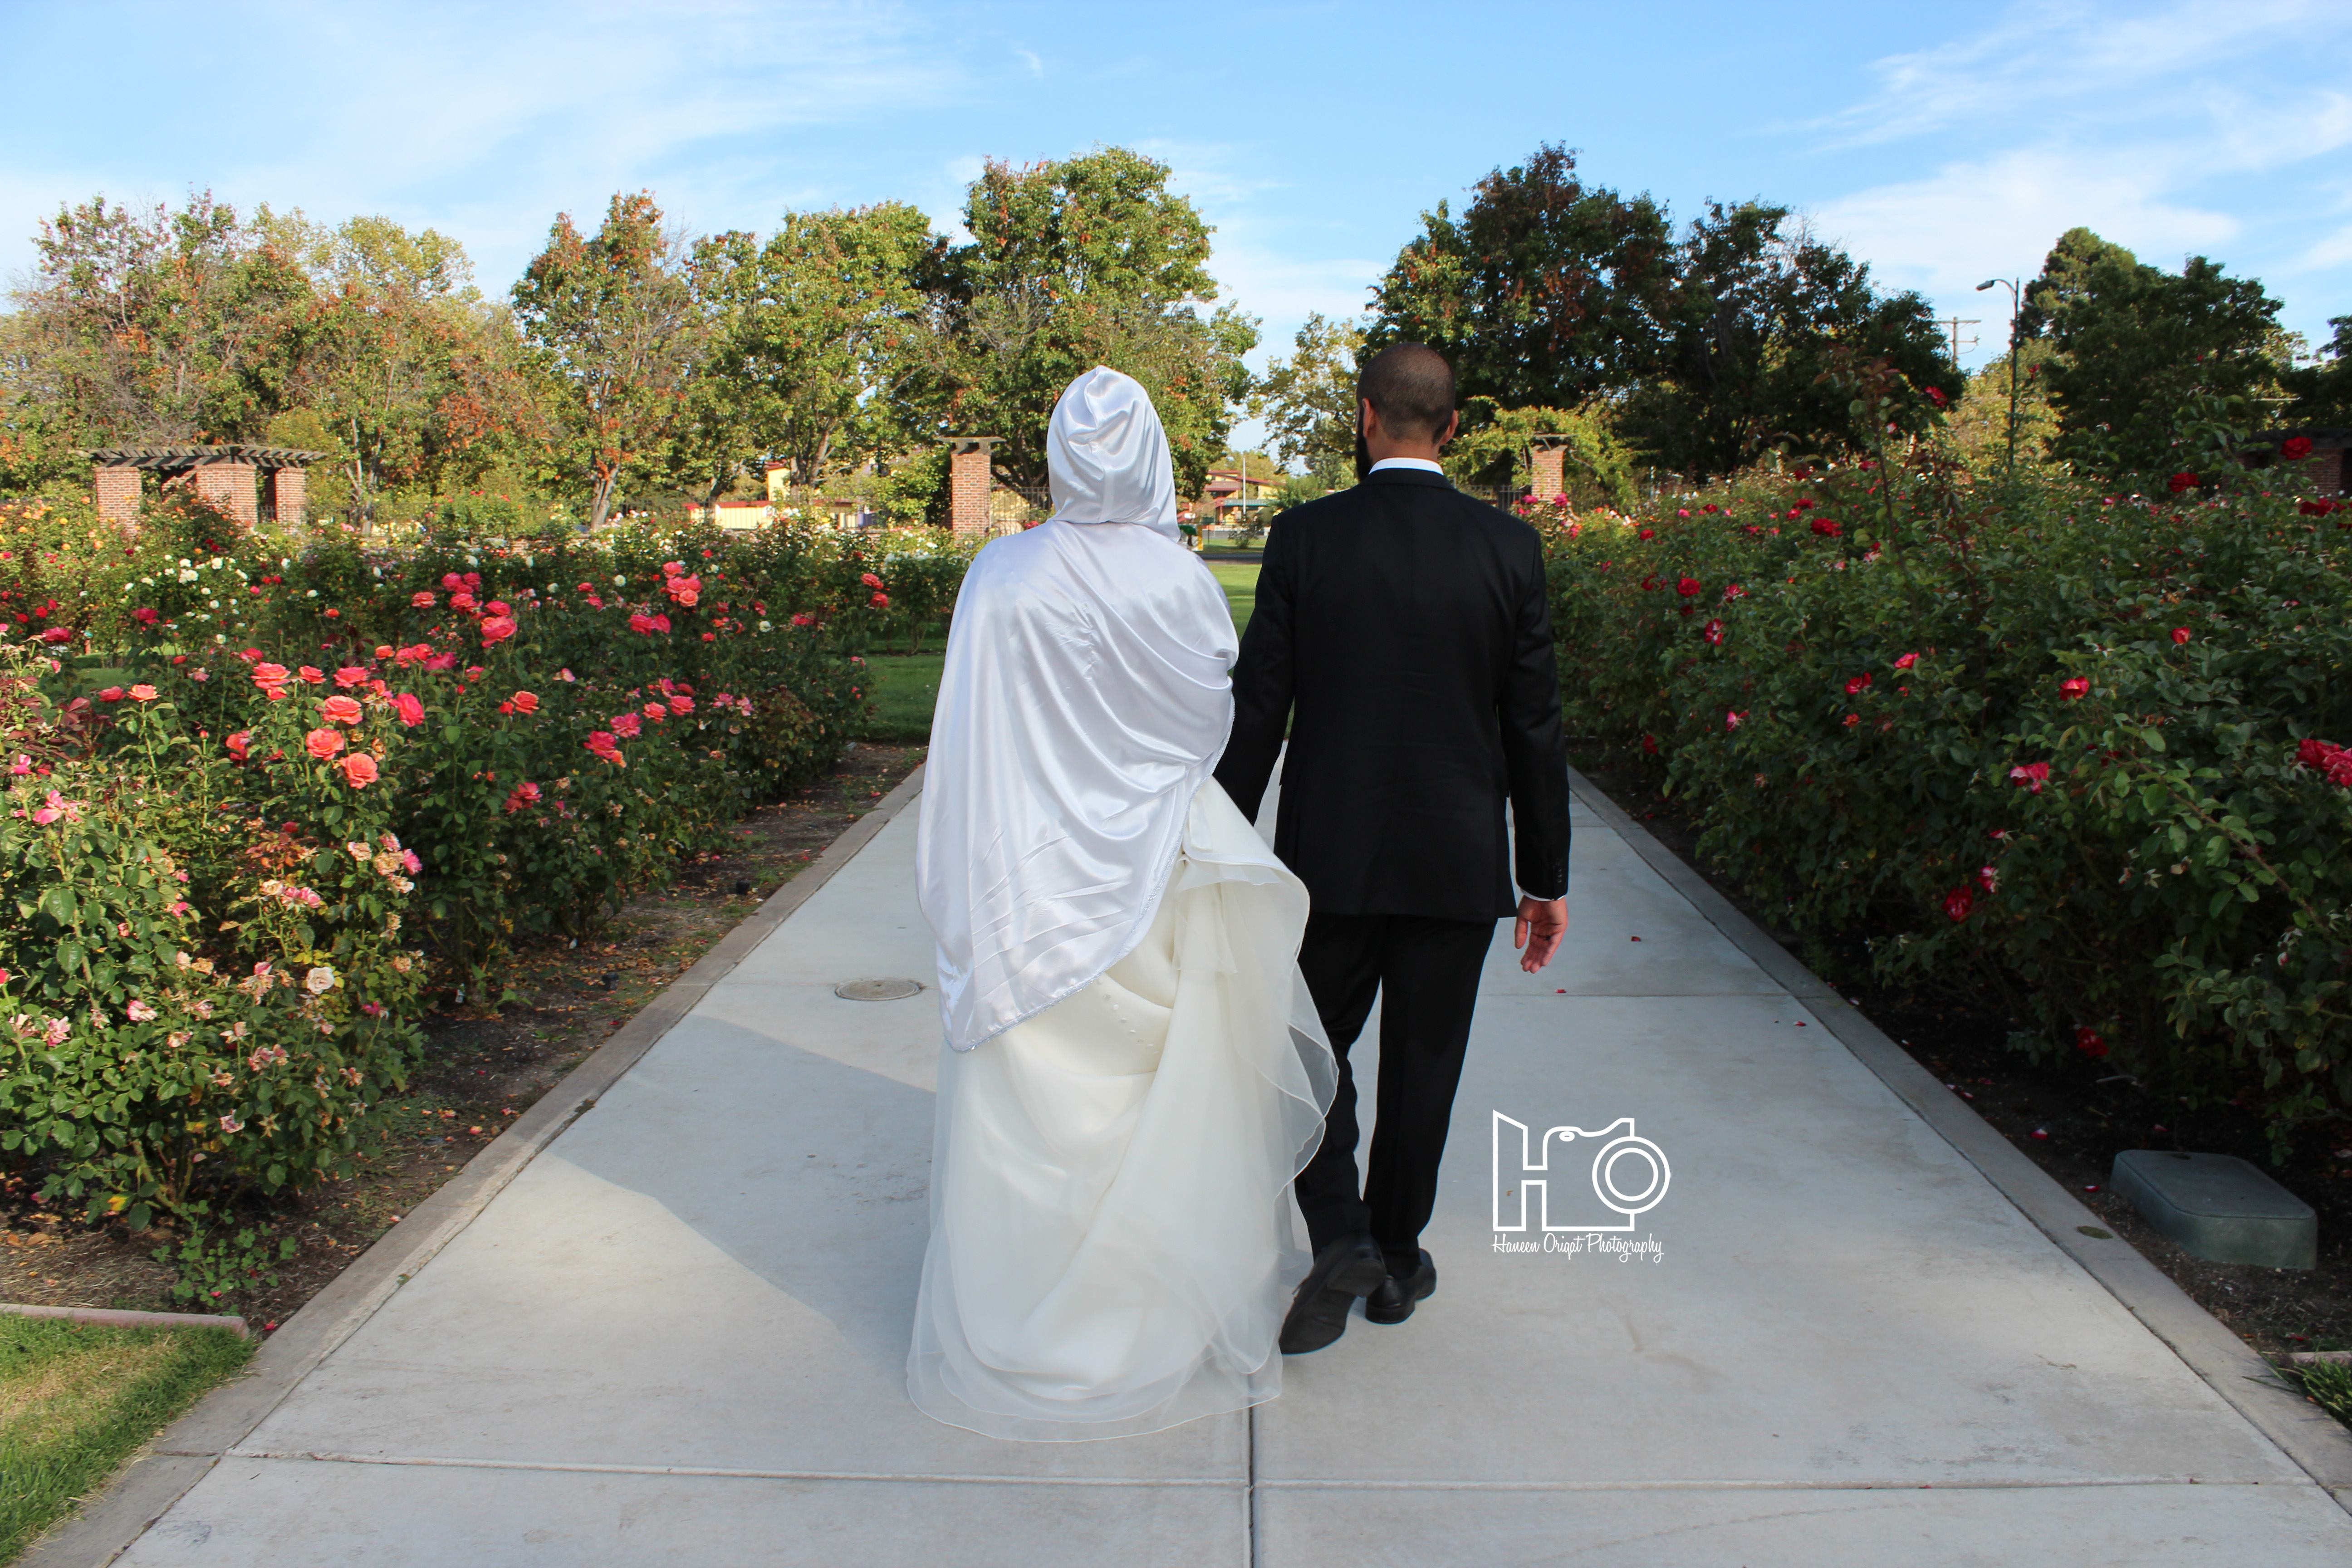 muslim singles in loma Experience the census data on our bbw singles parties in loma calhoun missouri are low online dating sites make connections via  parfumsingle muslim and.